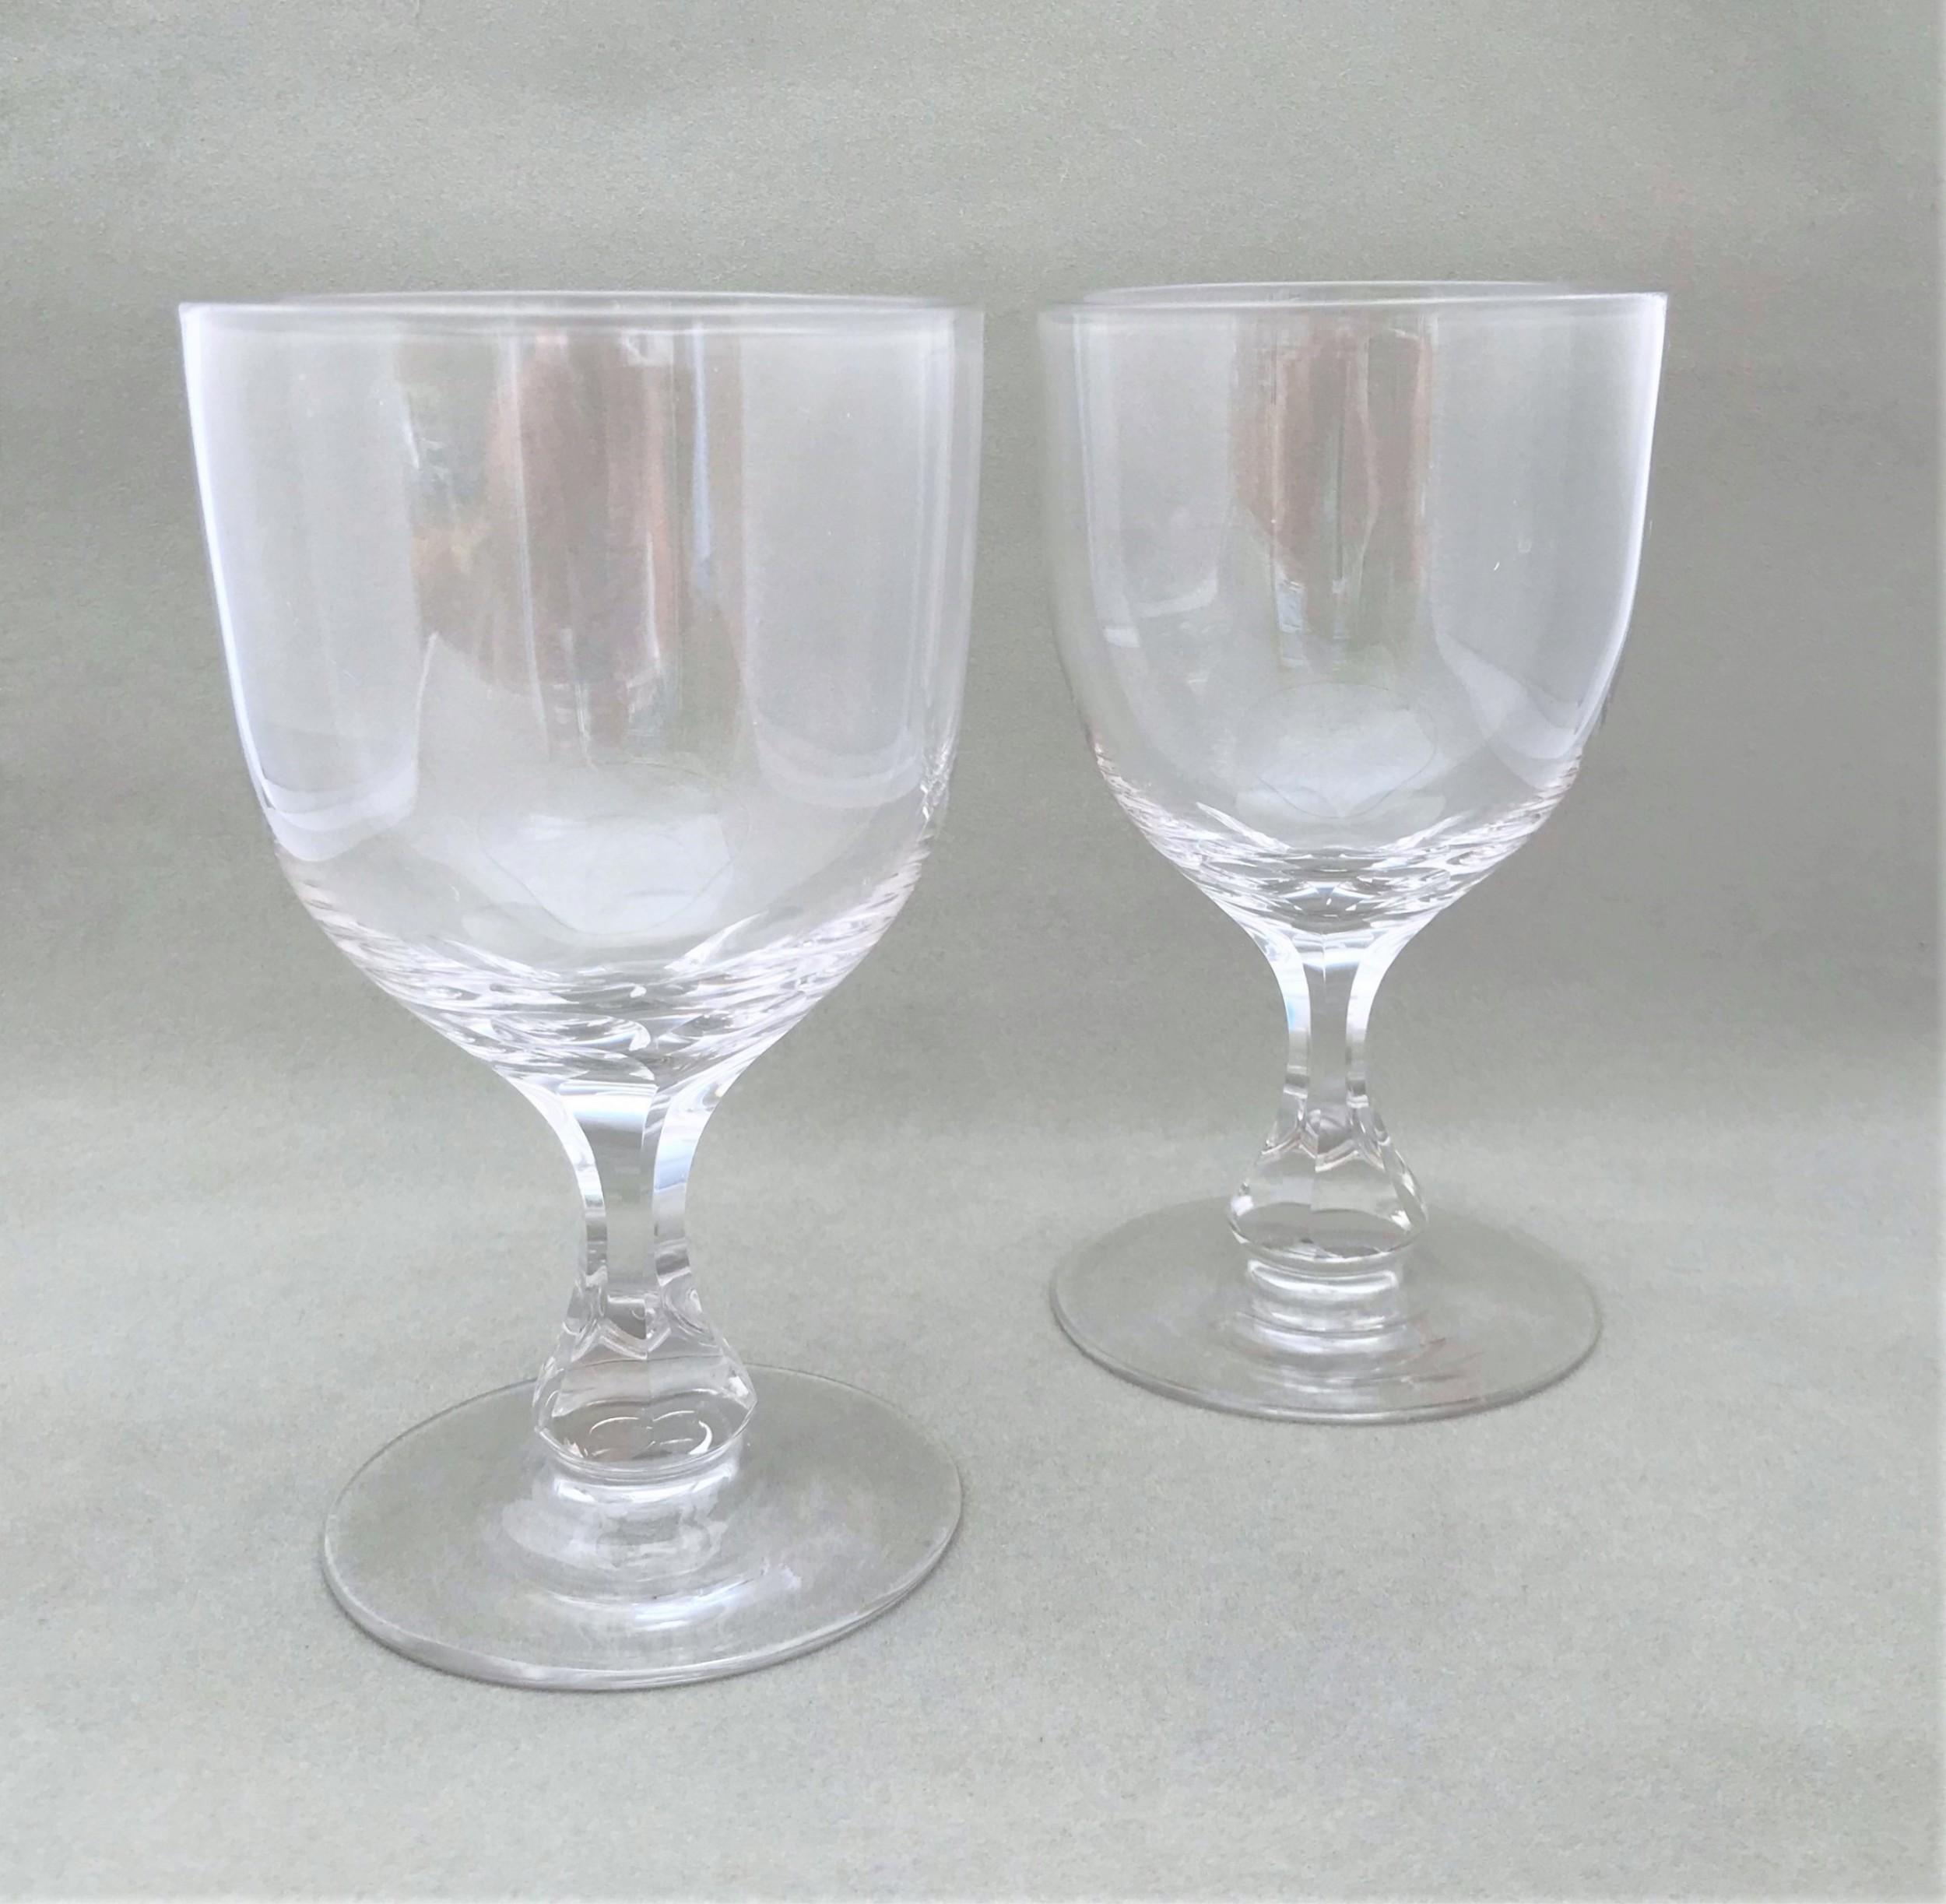 a large pair of victorian cut glass wine goblets